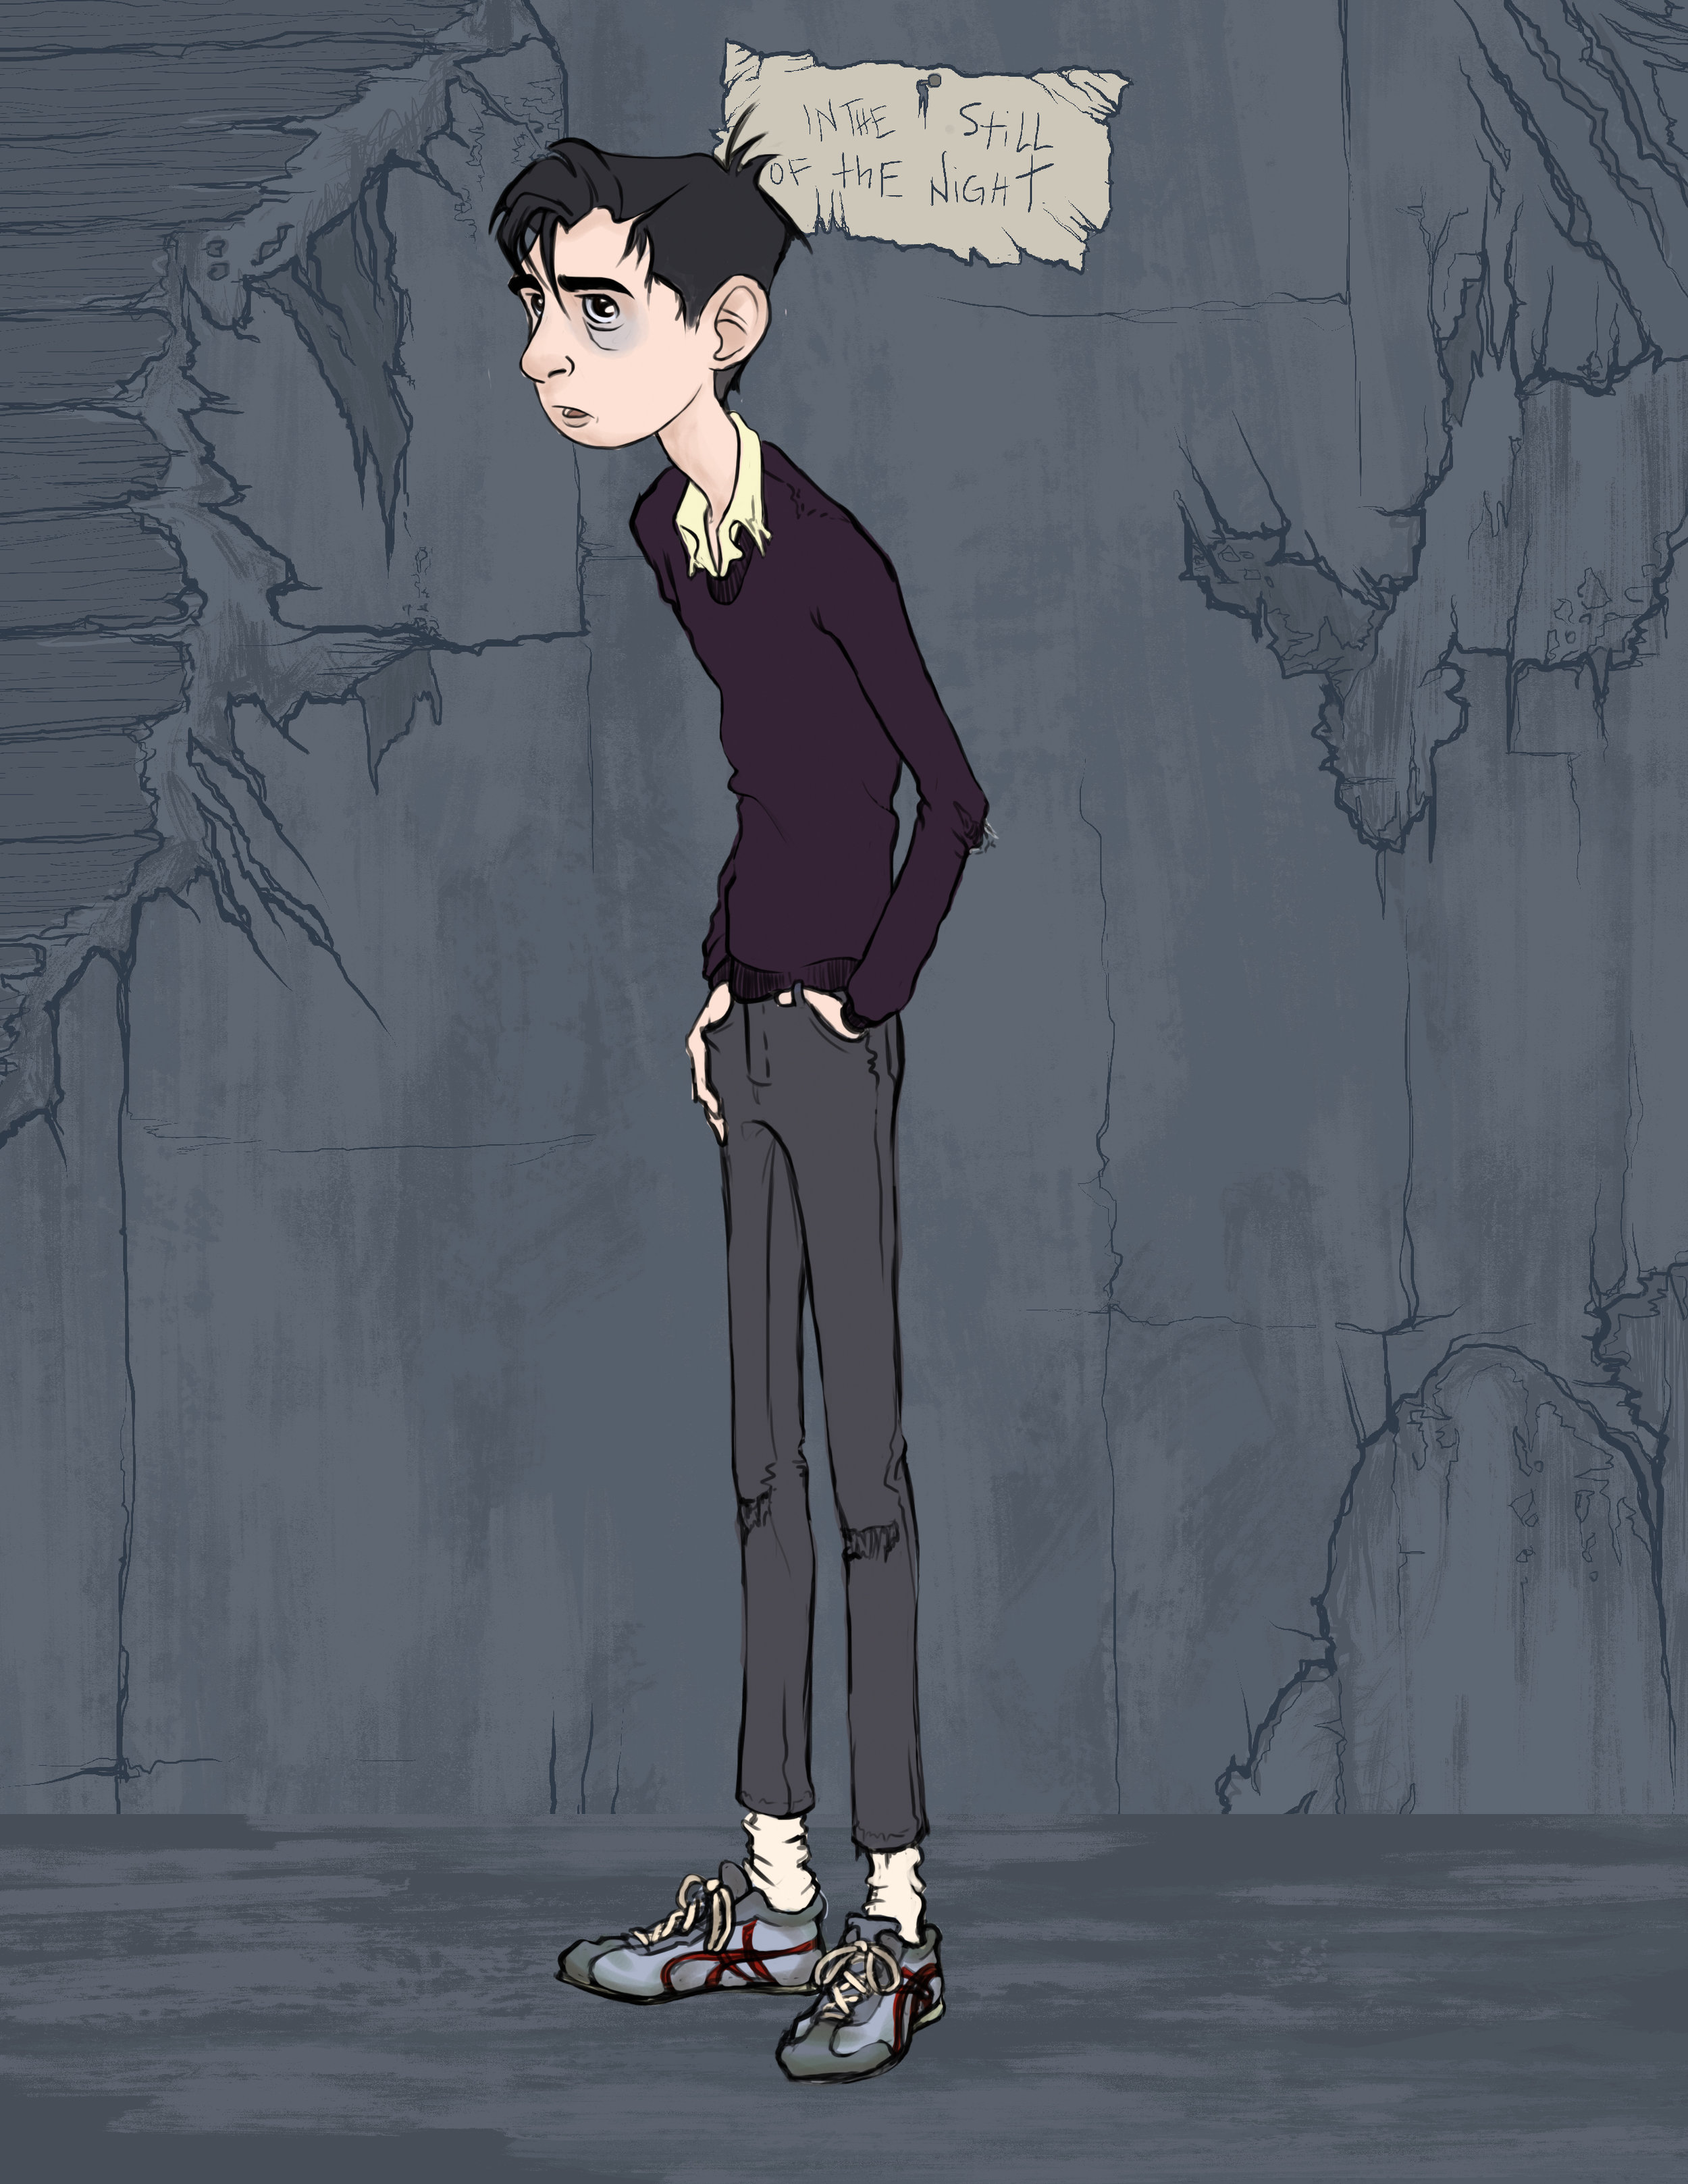 Harry: The troubled young man sinking more and more deeply into his living nightmare.